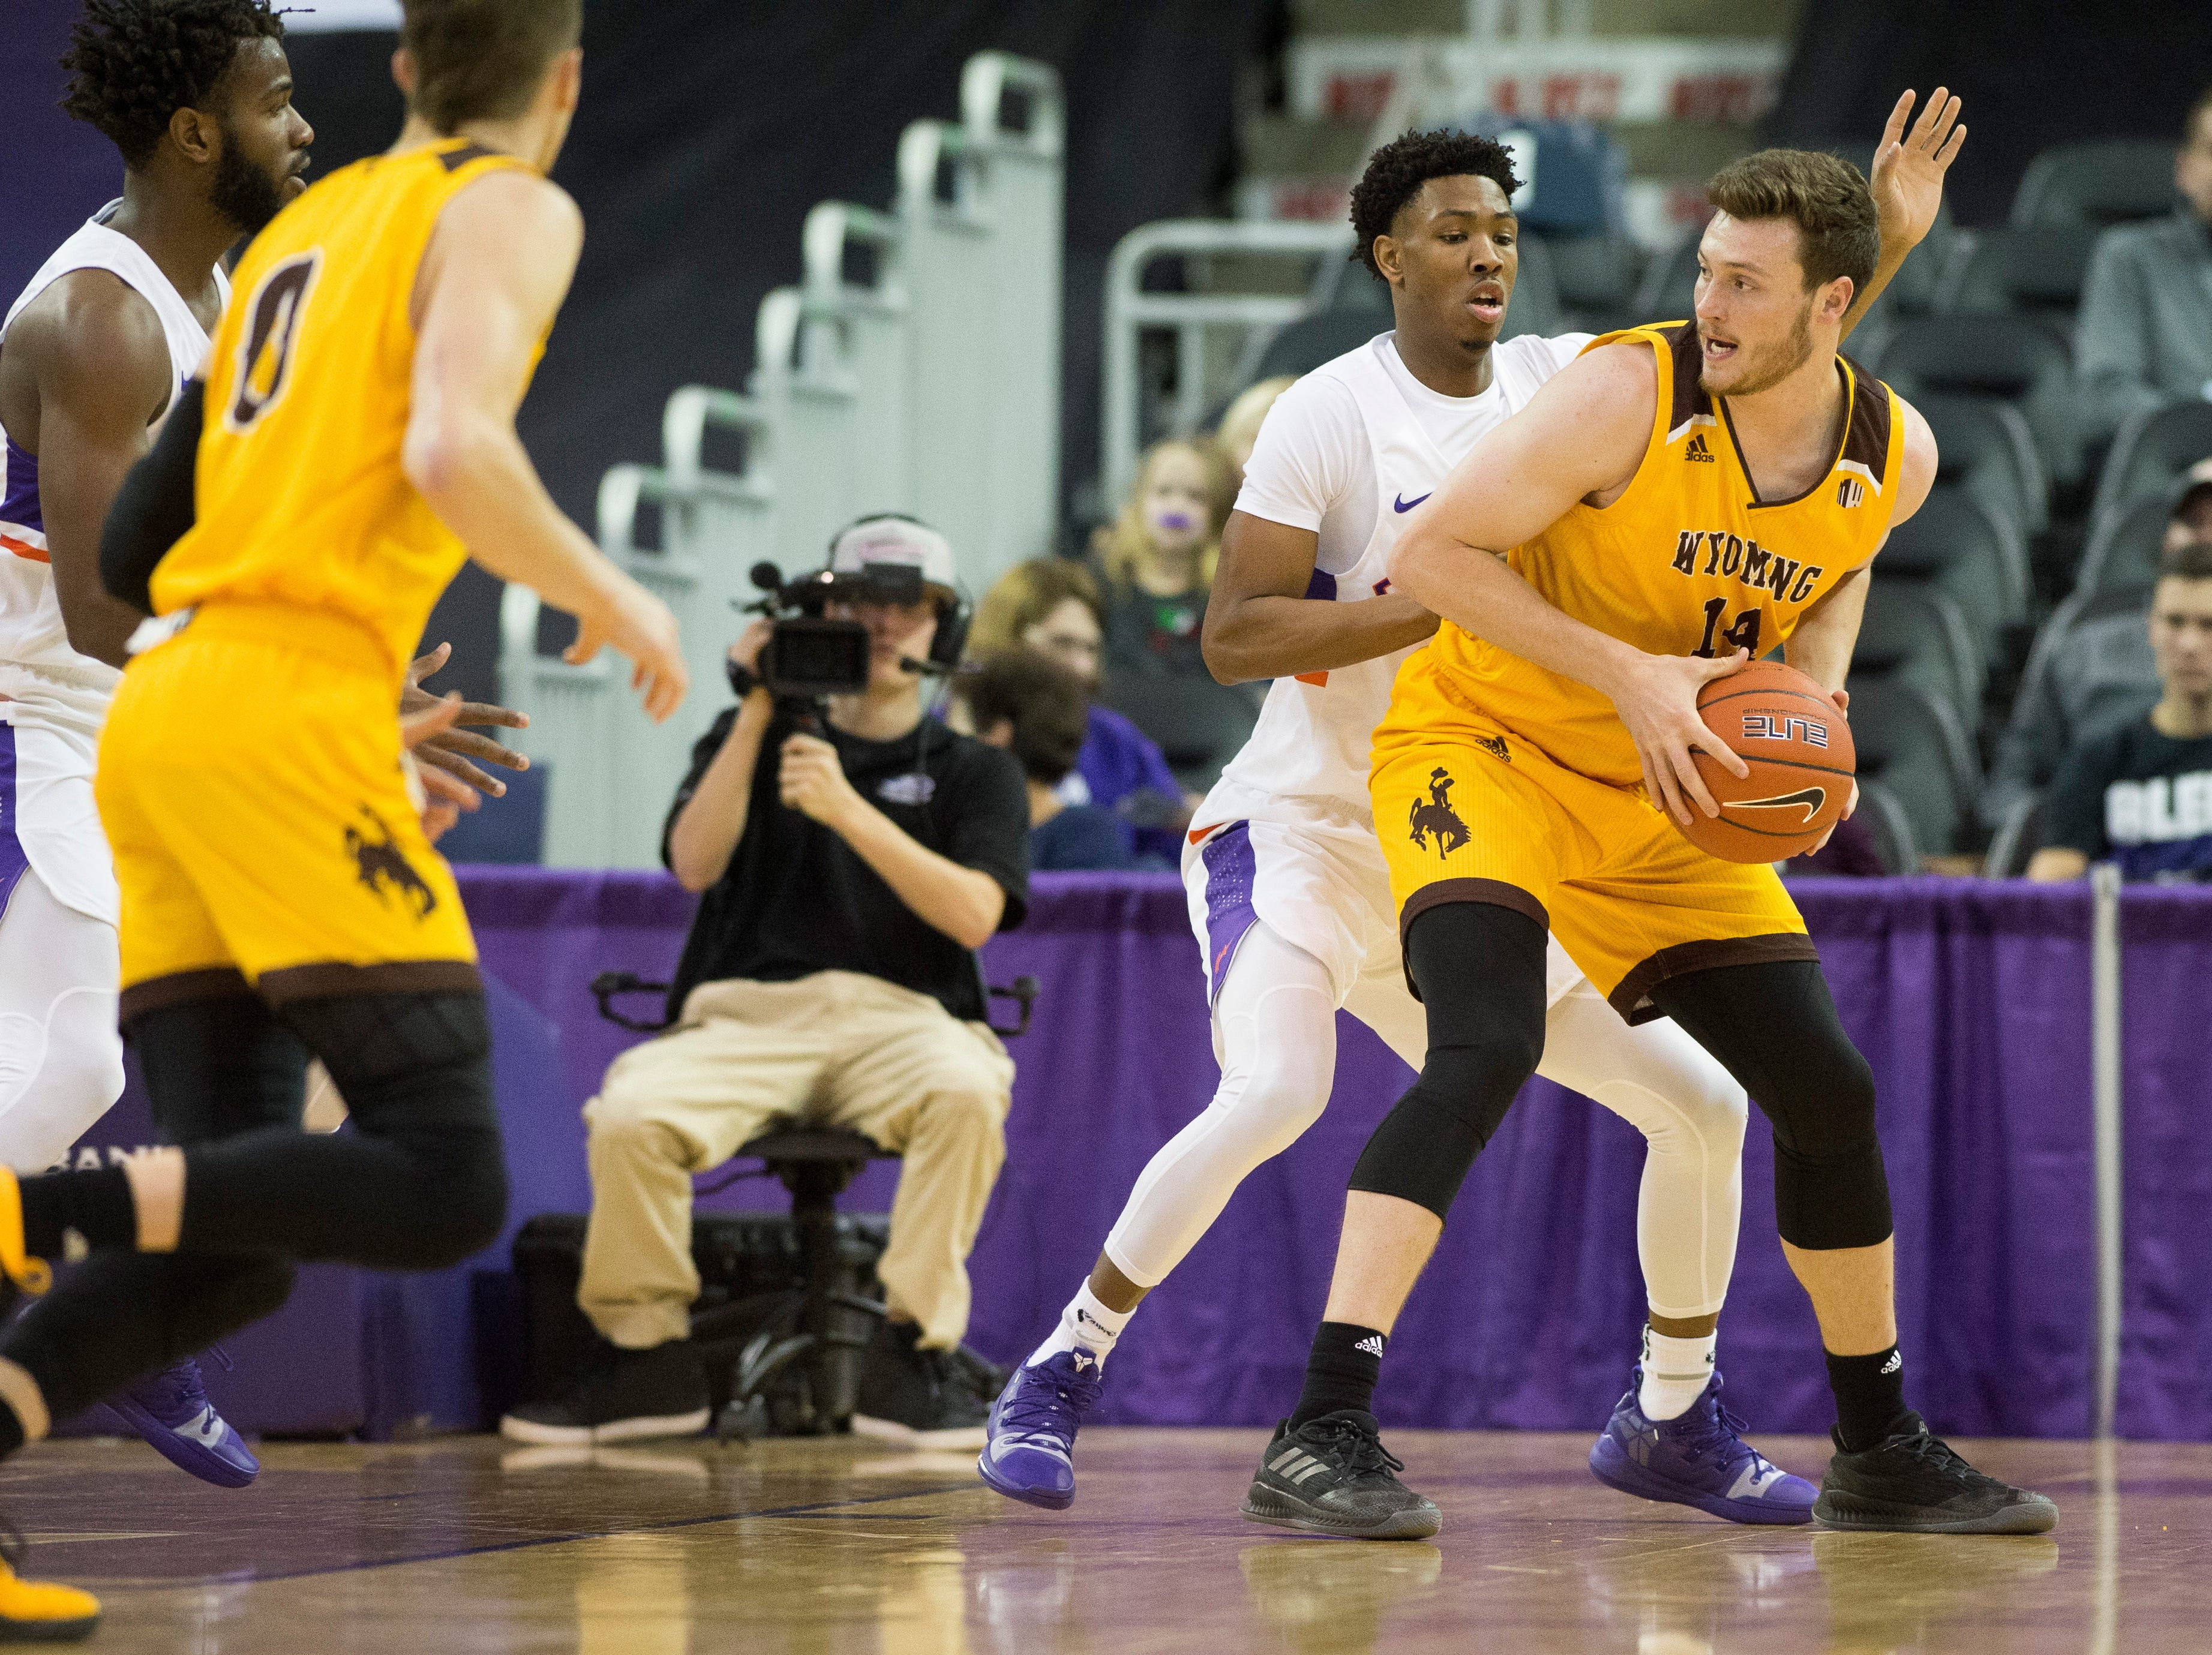 Wyoming's Austin Mueller is guarded by UE's Marty Hill (1) during the UE vs Wyoming game at the Ford Center Wednesday, Nov. 28, 2018. UE won 86-76.